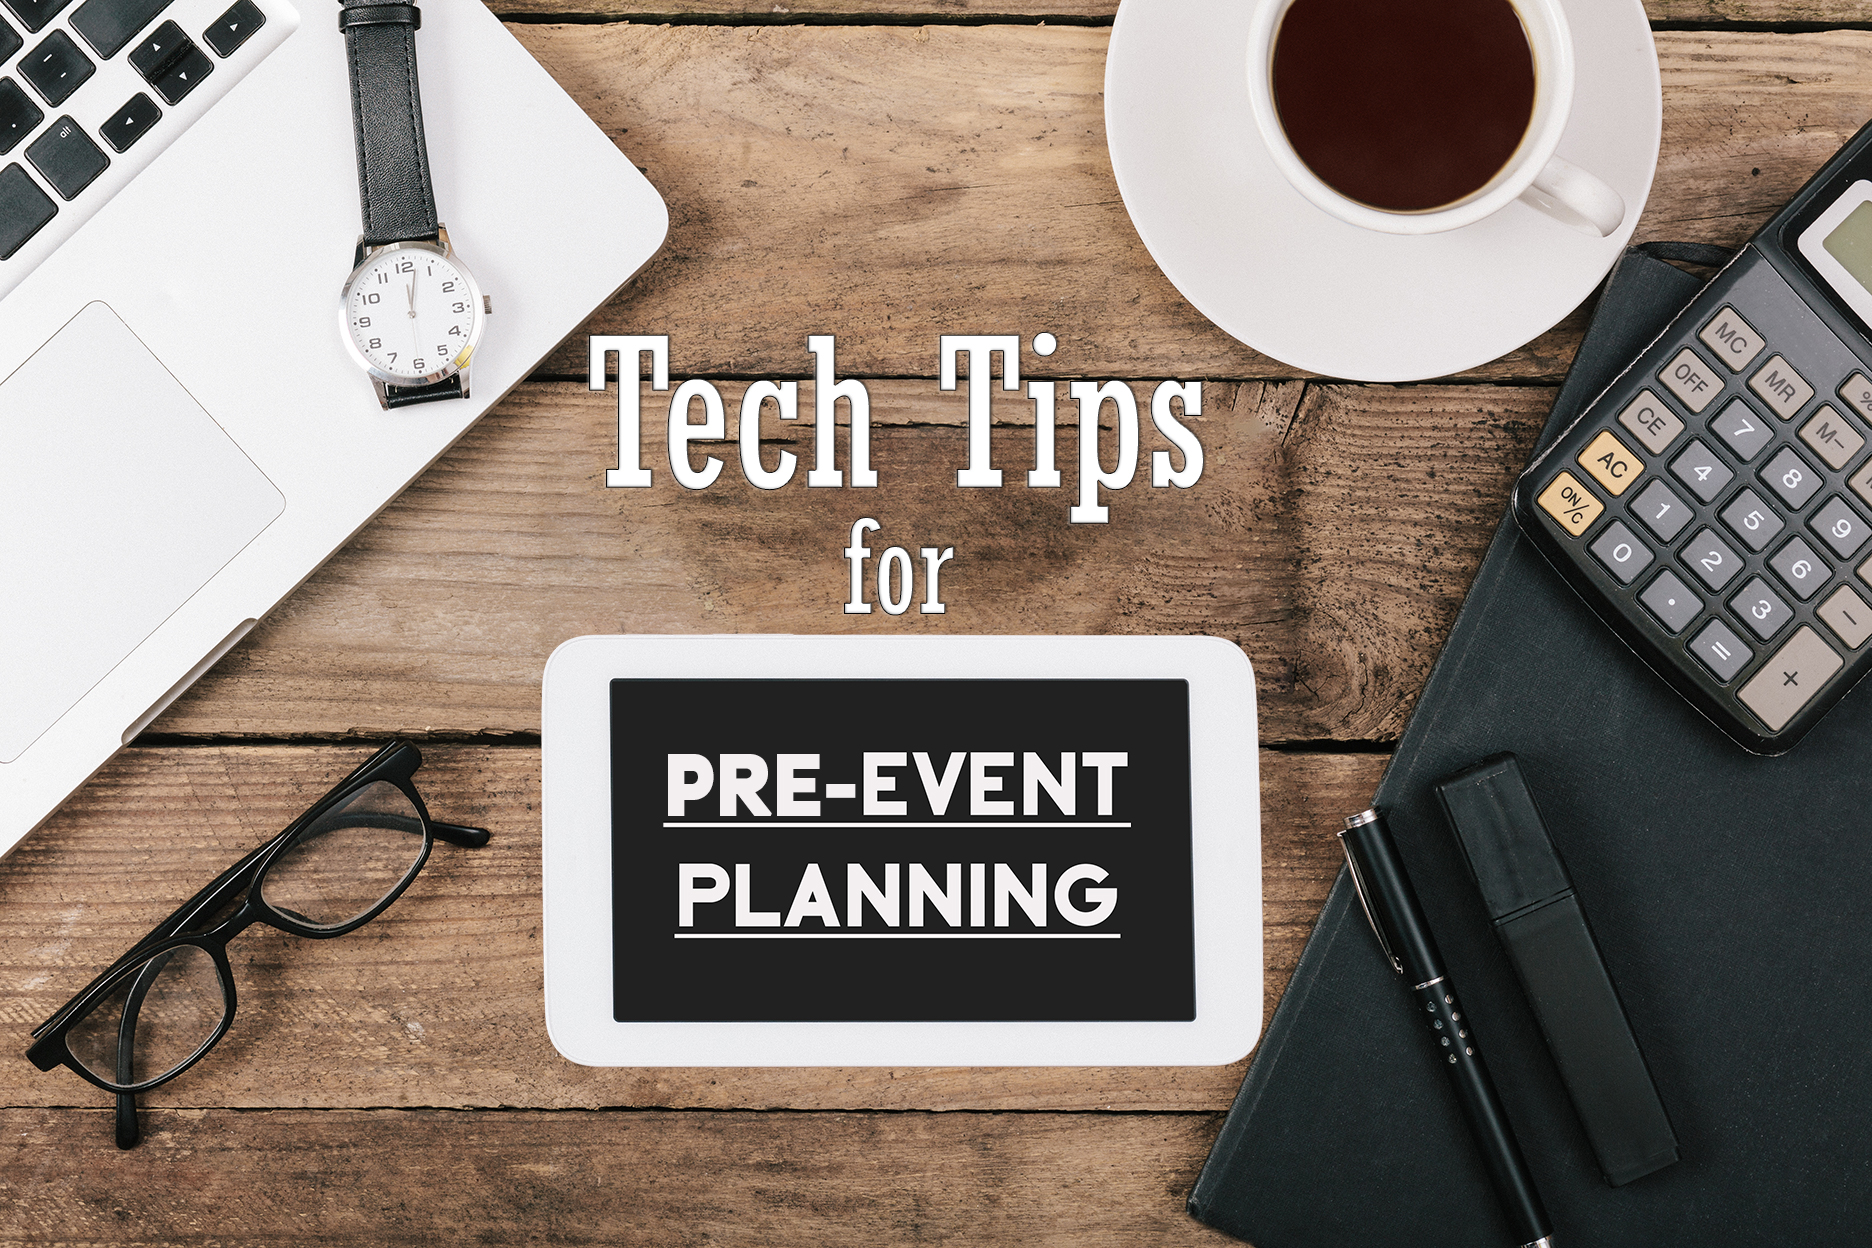 Tech Tips for Pre-event Planning